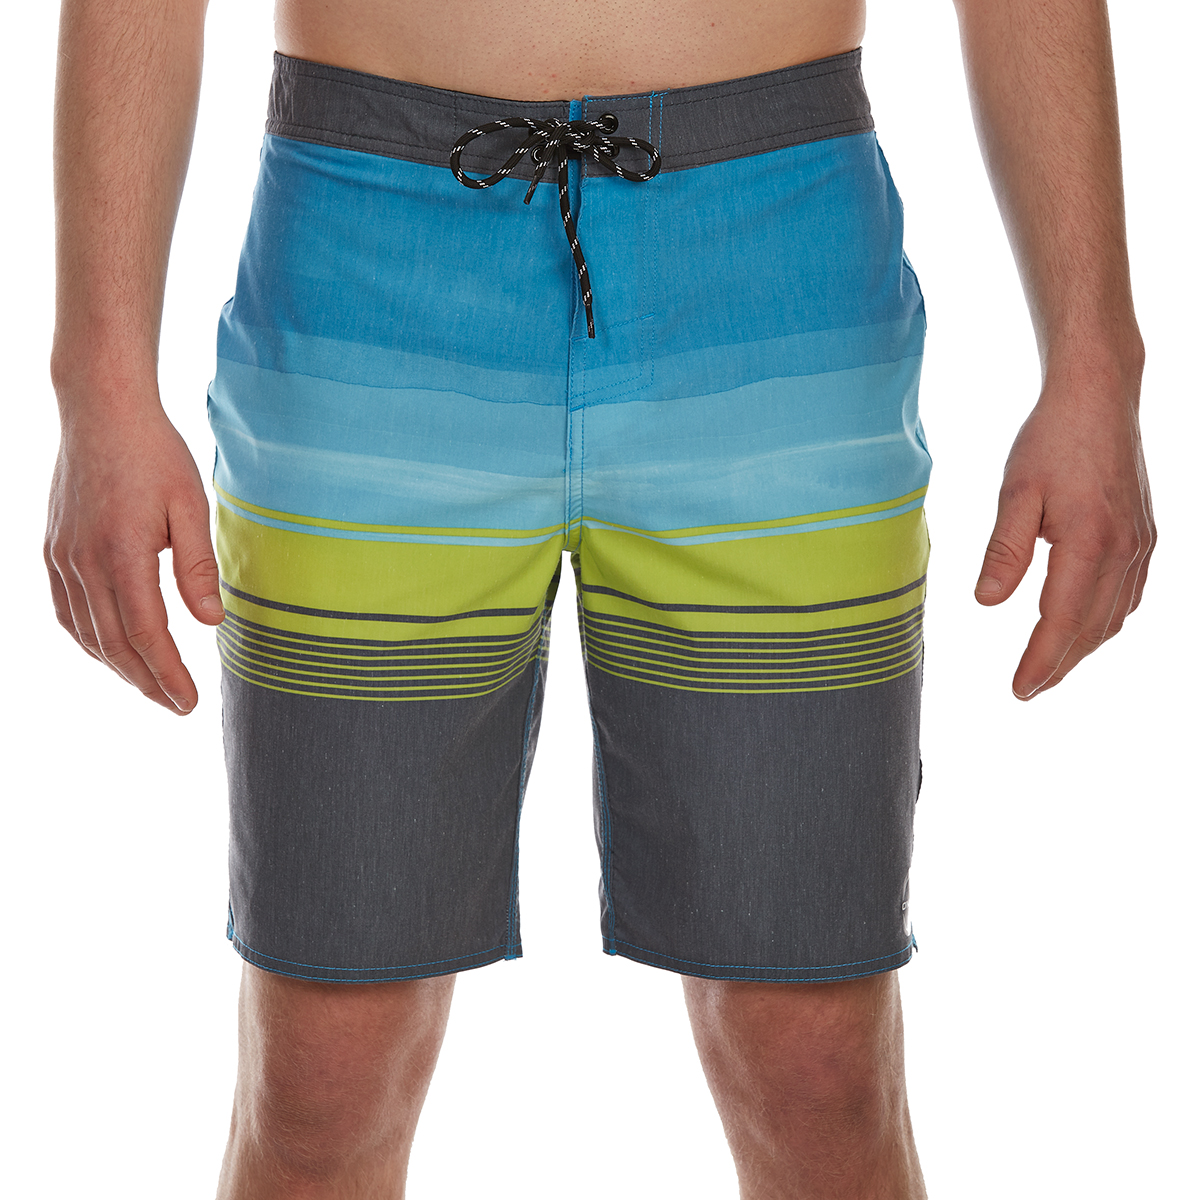 O'neill Guys' Informant Boardshorts - Green, 36